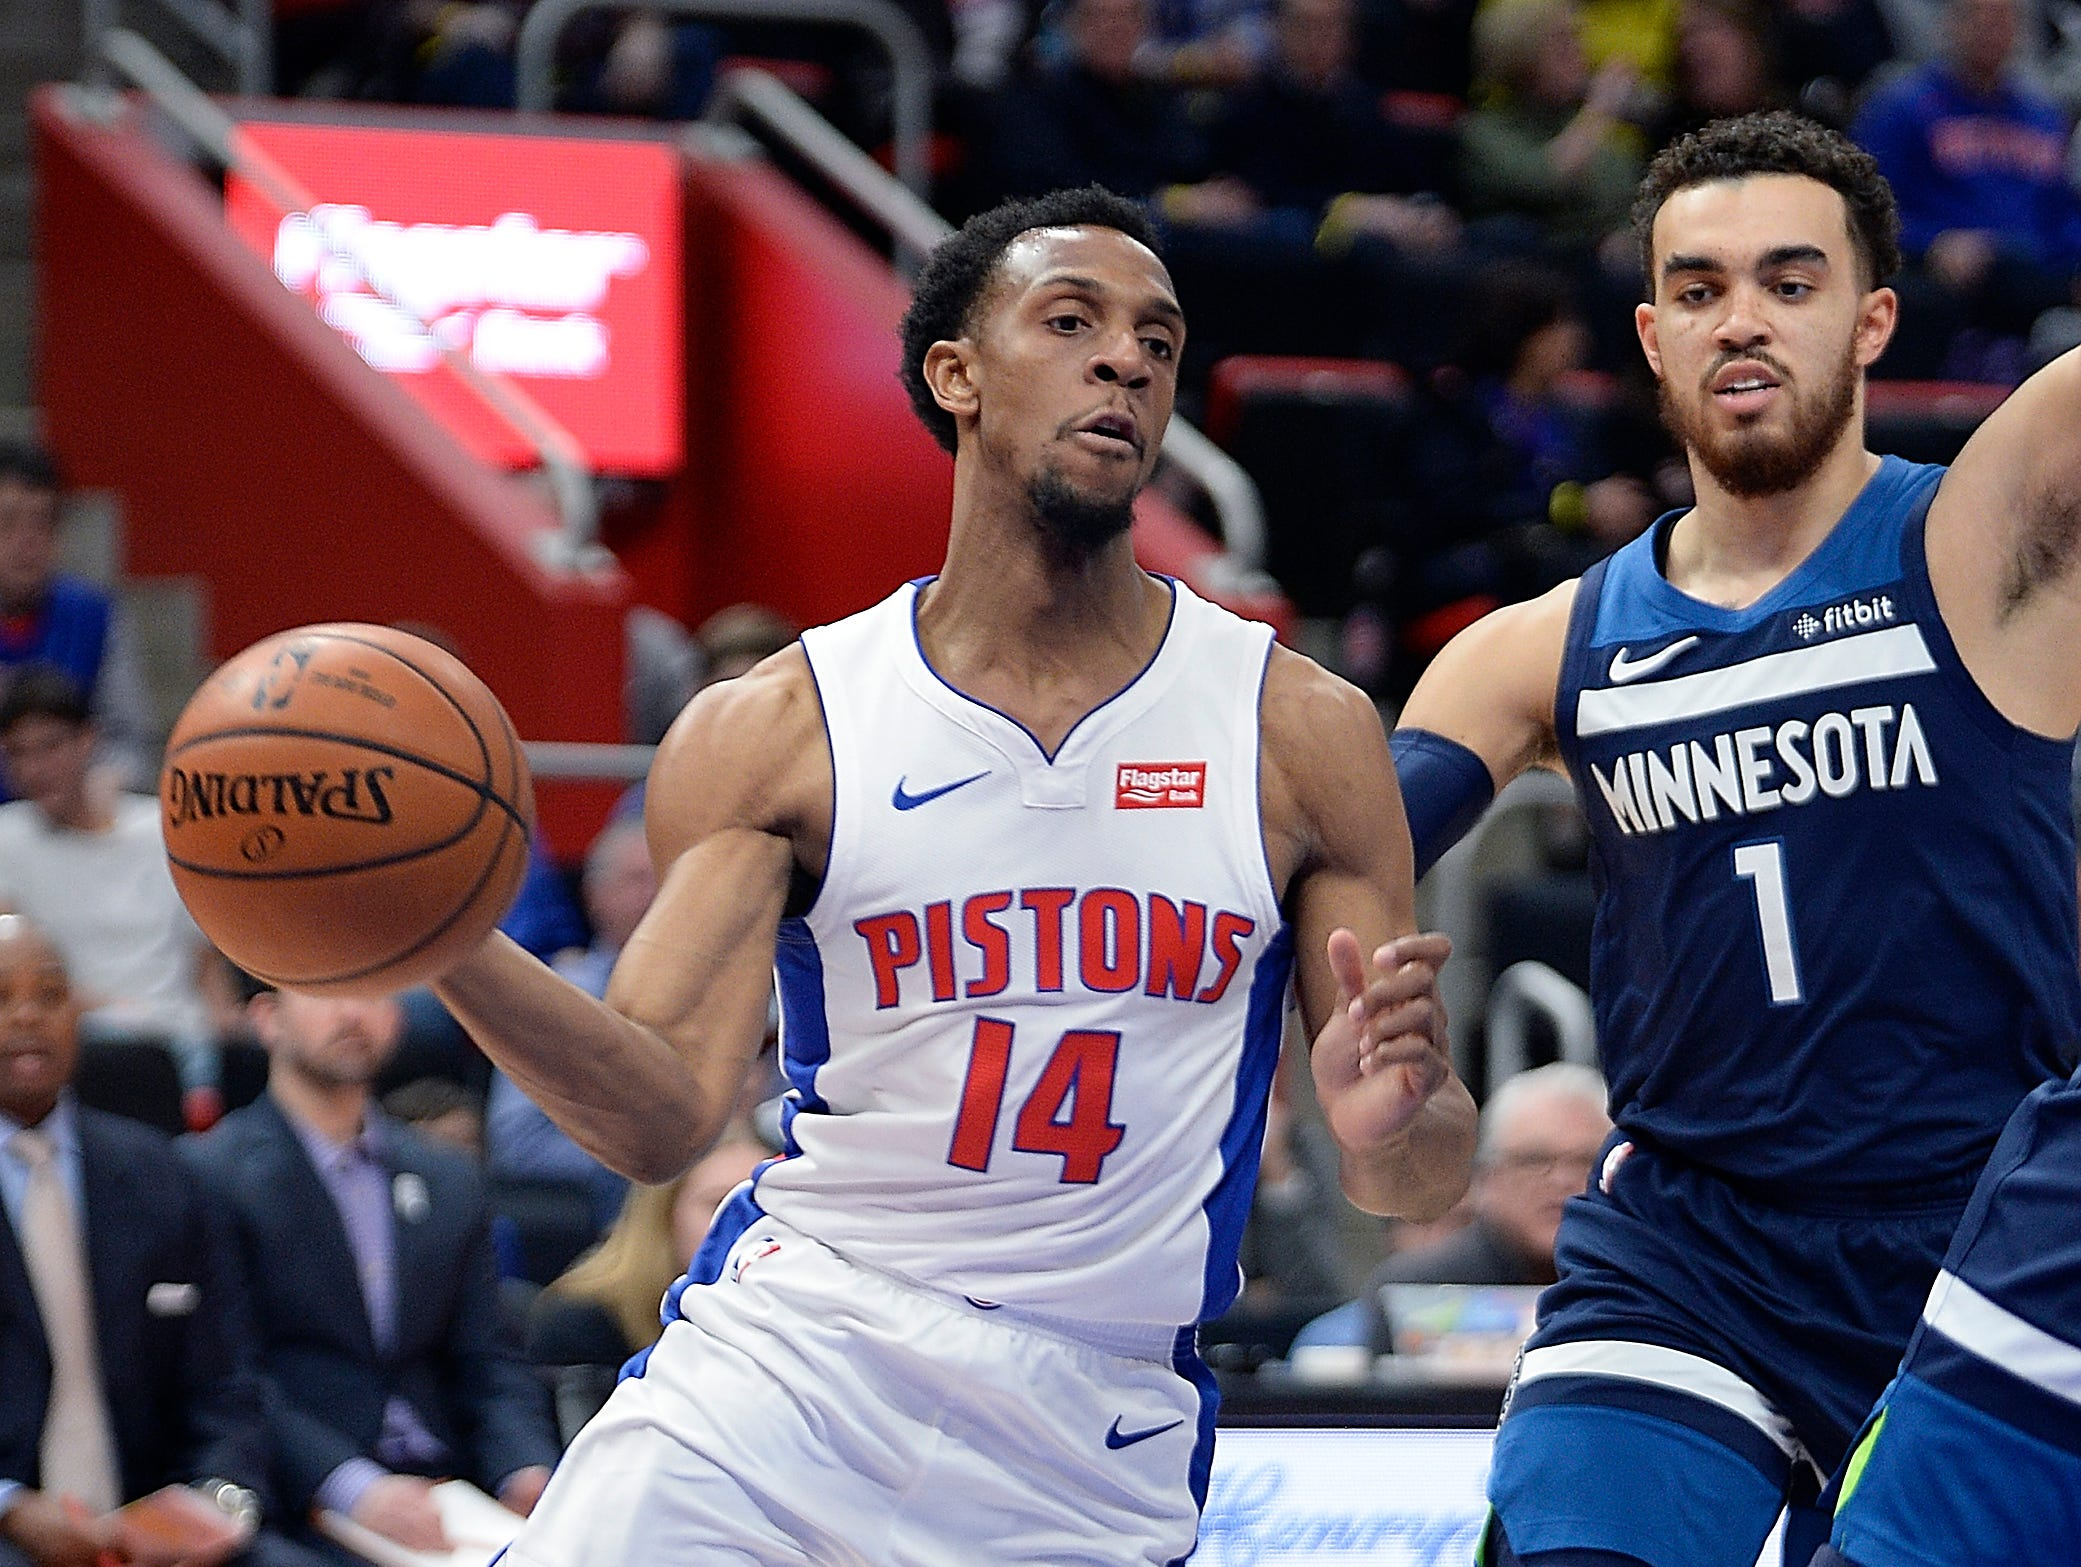 Pistons' Ish Smith drives around Timberwolves' Tyus Jones in the first quarter.